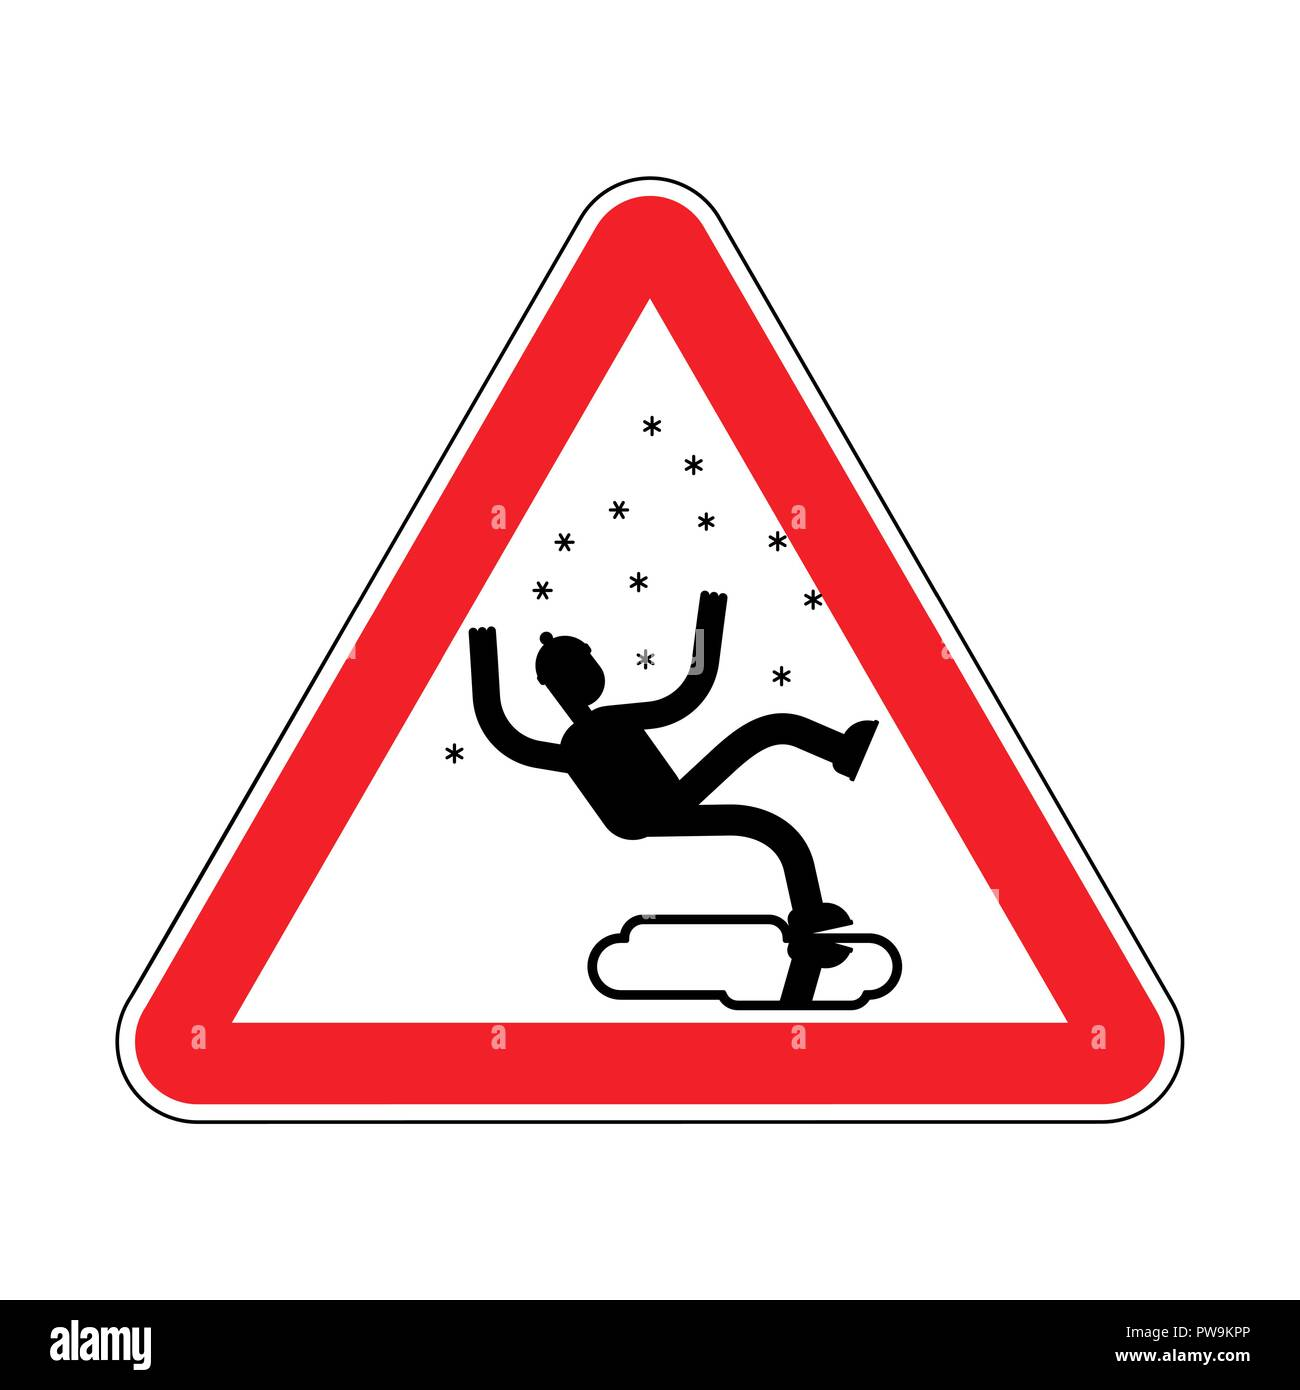 Attention Slippery ice road in winter. Caution Slip on ice. Red road danger sign - Stock Image